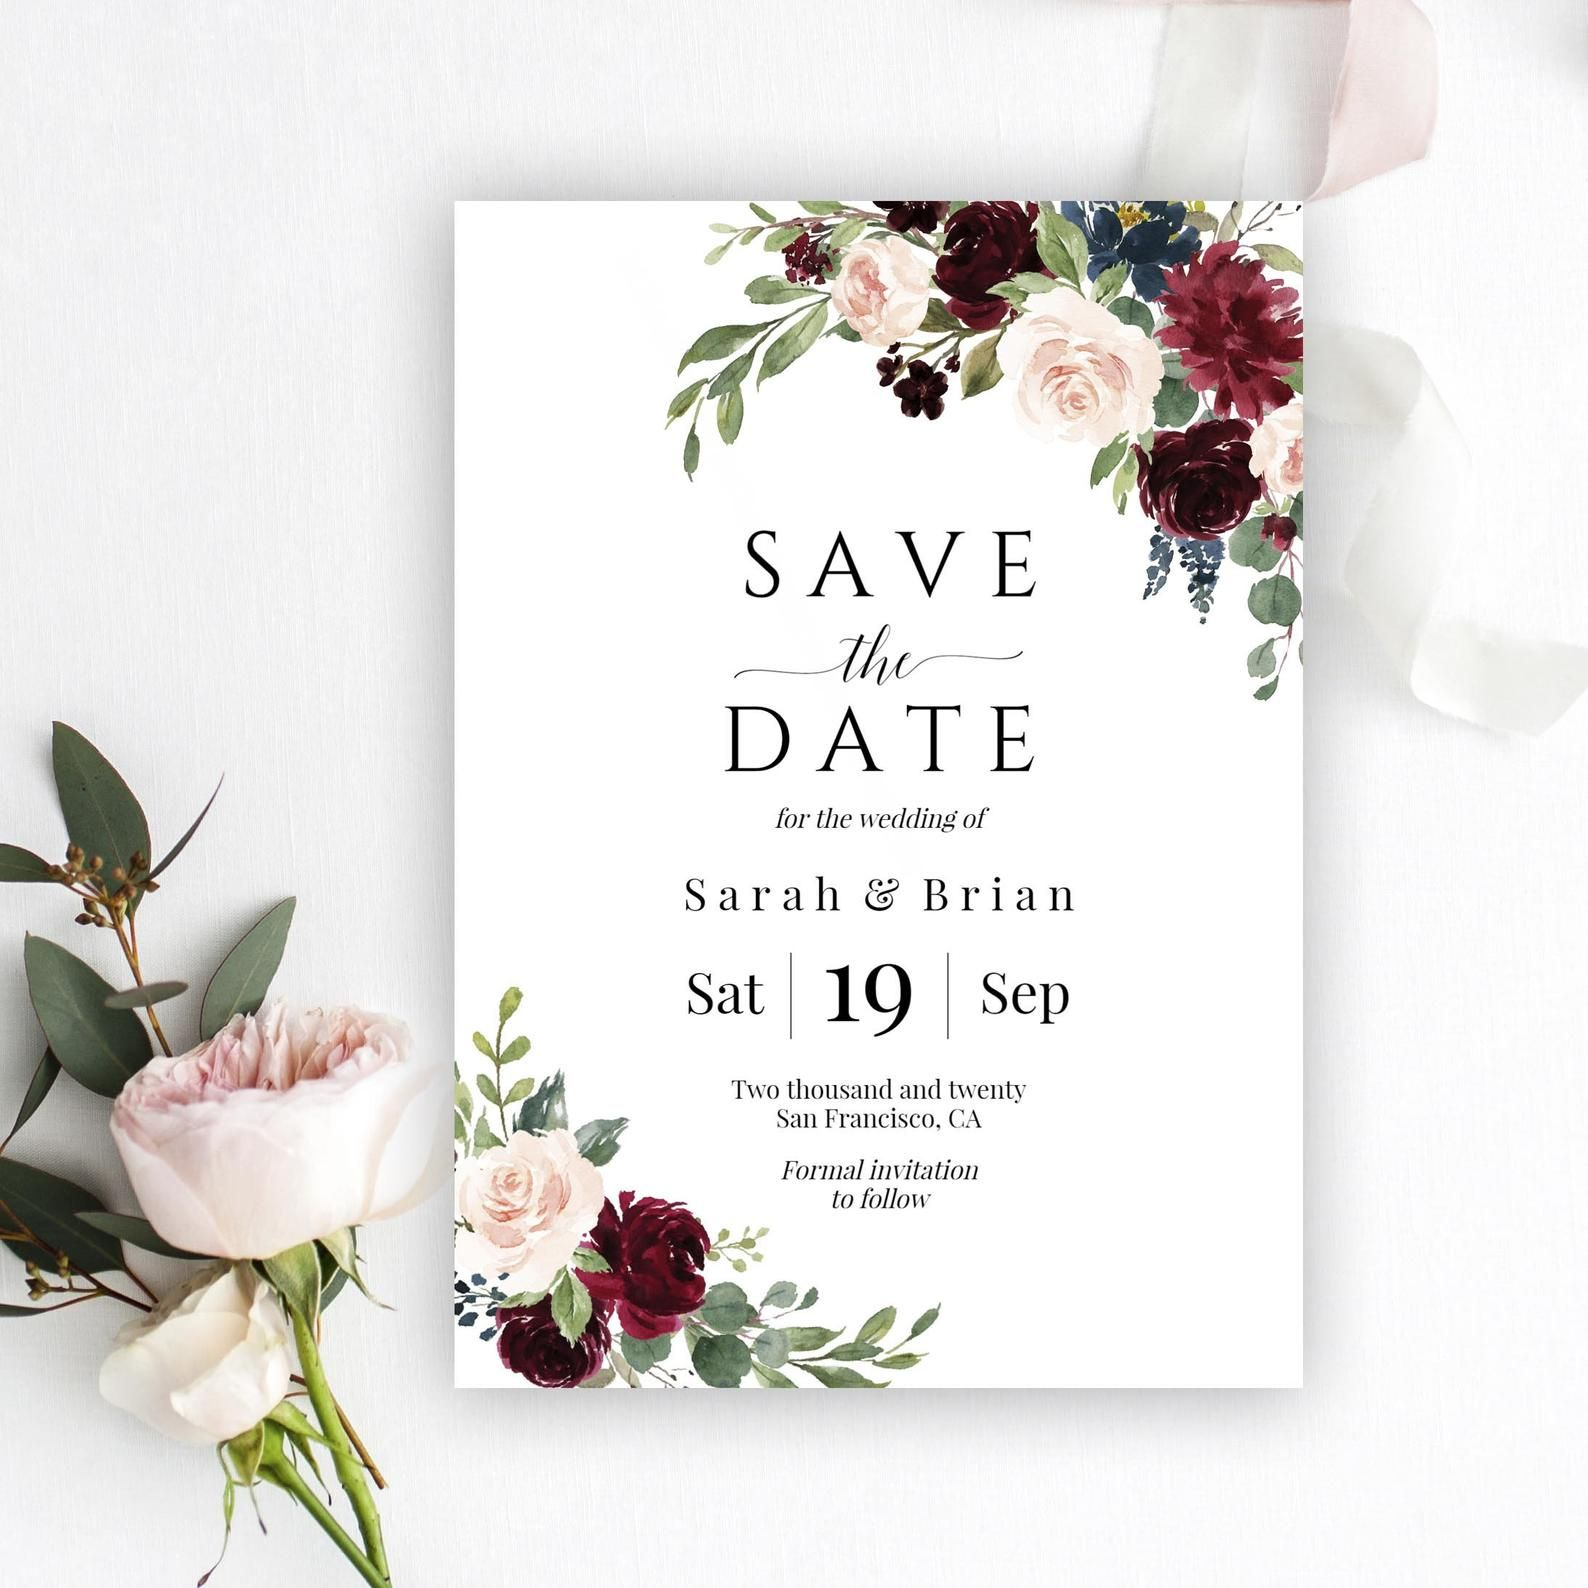 Save The Date Template Save The Date Cards Save The Dates Etsy Save The Date Save The Date Postcards Save The Date Cards